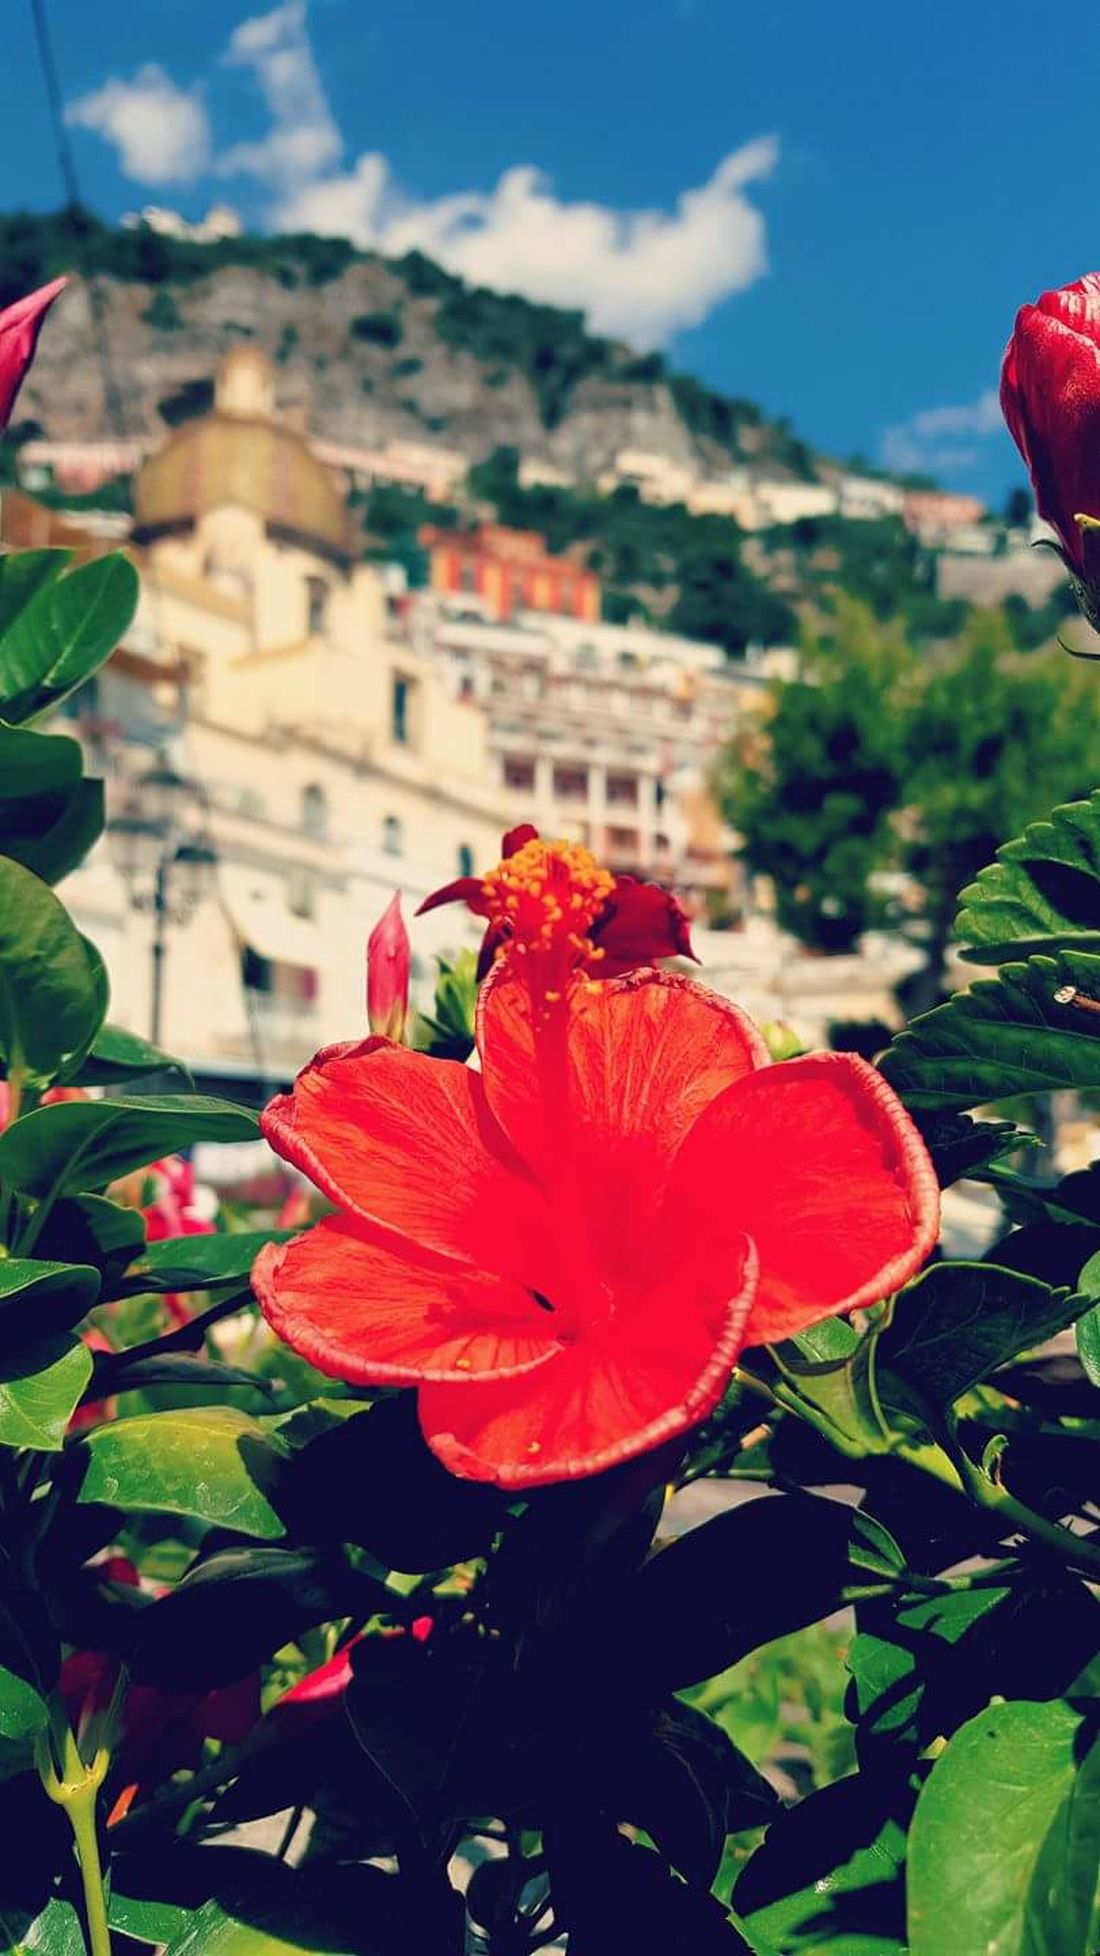 Positano Positano, Italy Positanocoast Positano Italy Positano Hidden Garden Amalfi_coast Amalfiküste Amalfitan Coast Amalficoast Amalfi Coast Costieramalfitana Costieraamalfitana Costiera Amalfitana Flower Fiori Flower Head Nature Plant Beauty In Nature Red Blossom Outdoors Close-up Fragility